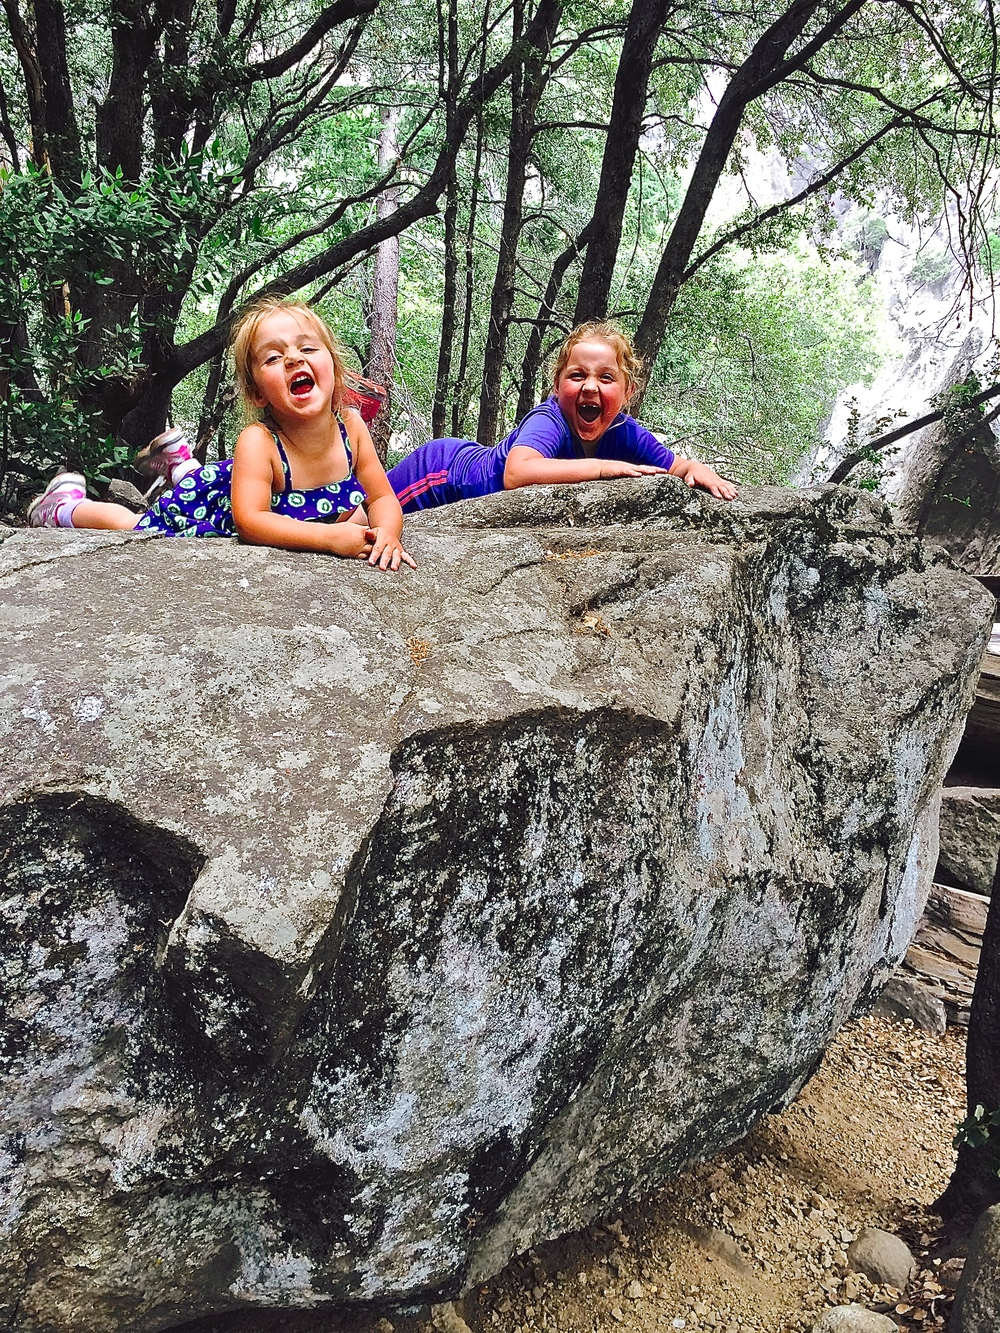 At Yosemite Falls the girls found some rocks to climb